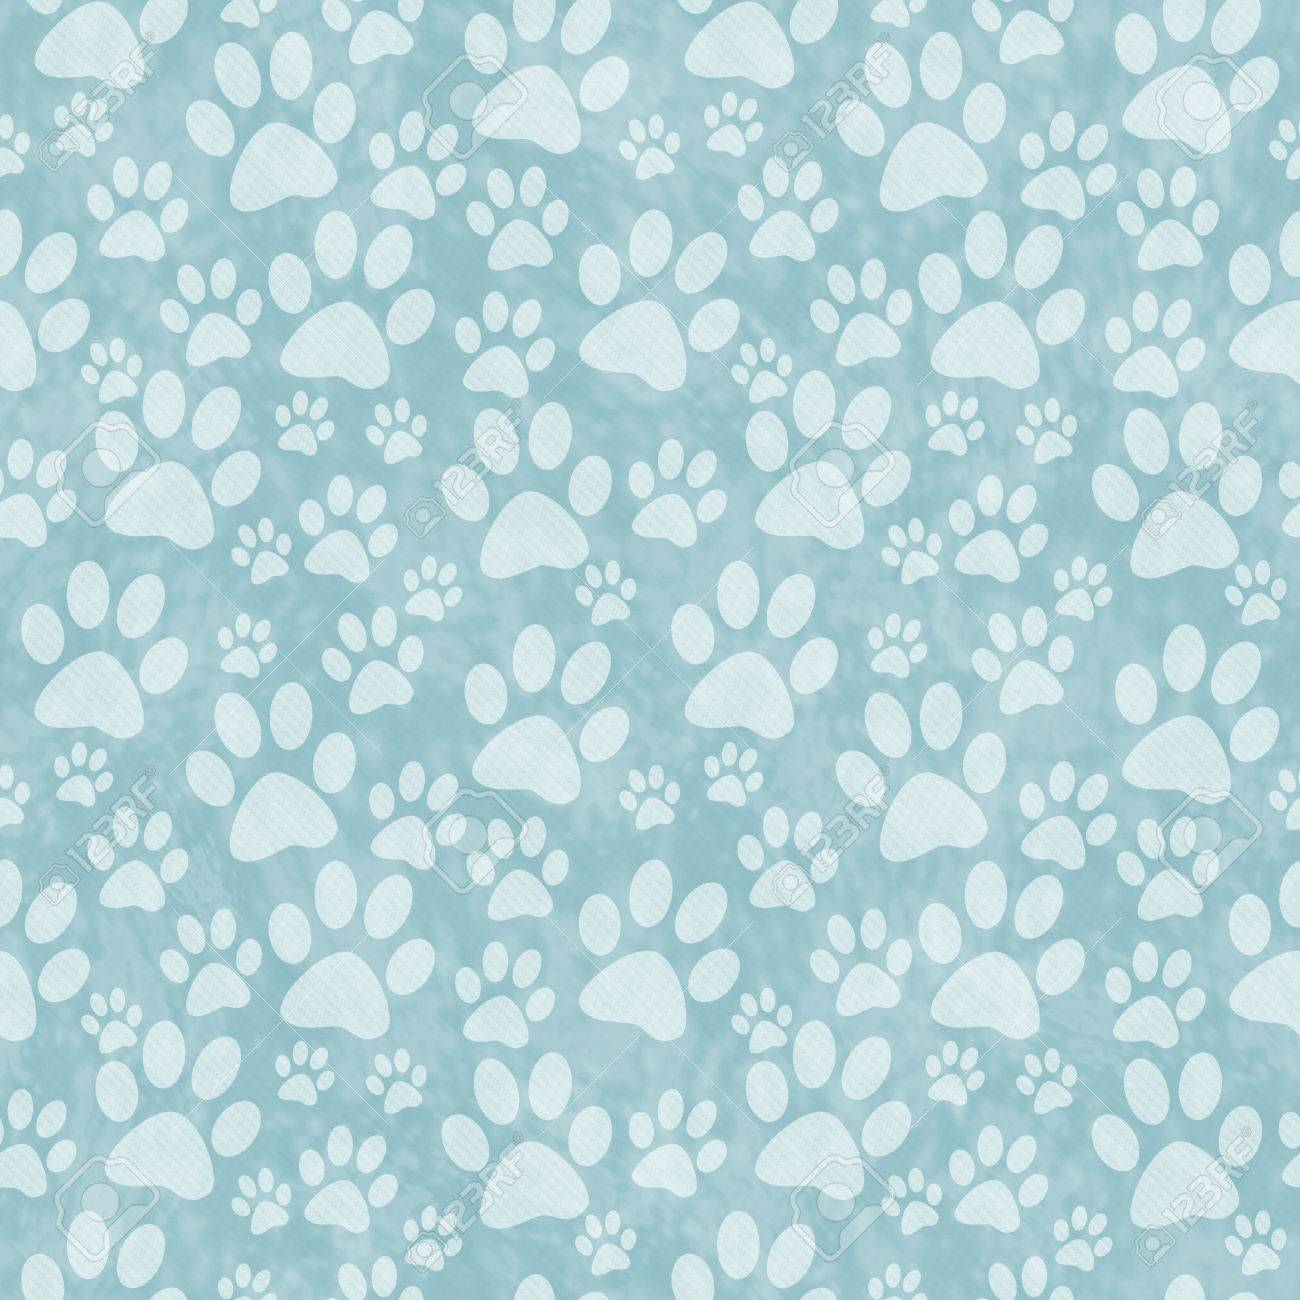 blue dog paw print tile pattern repeat background that is seamless